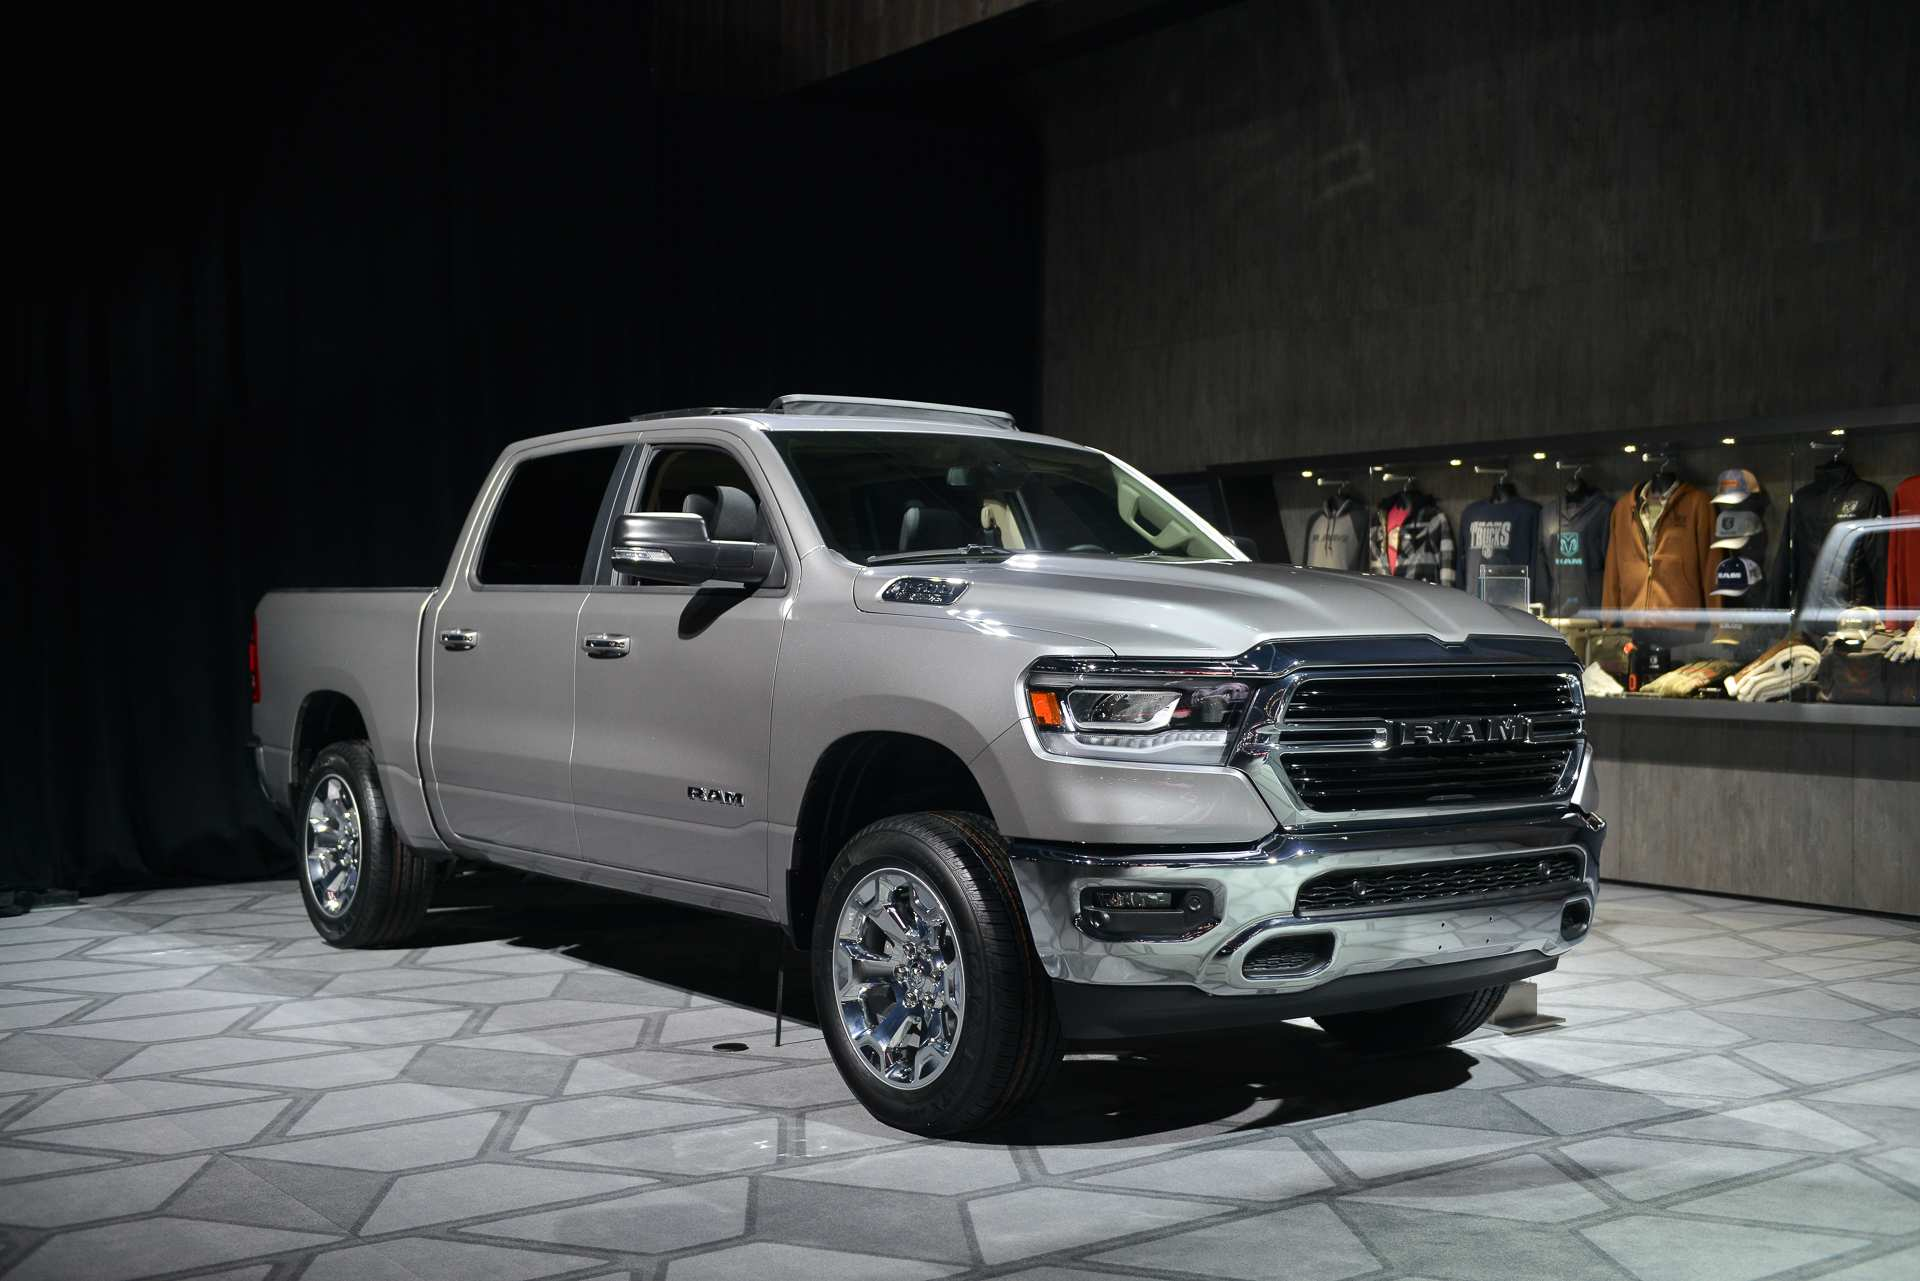 90 Great Best 2019 Dodge Ram Harman Kardon First Drive History with Best 2019 Dodge Ram Harman Kardon First Drive